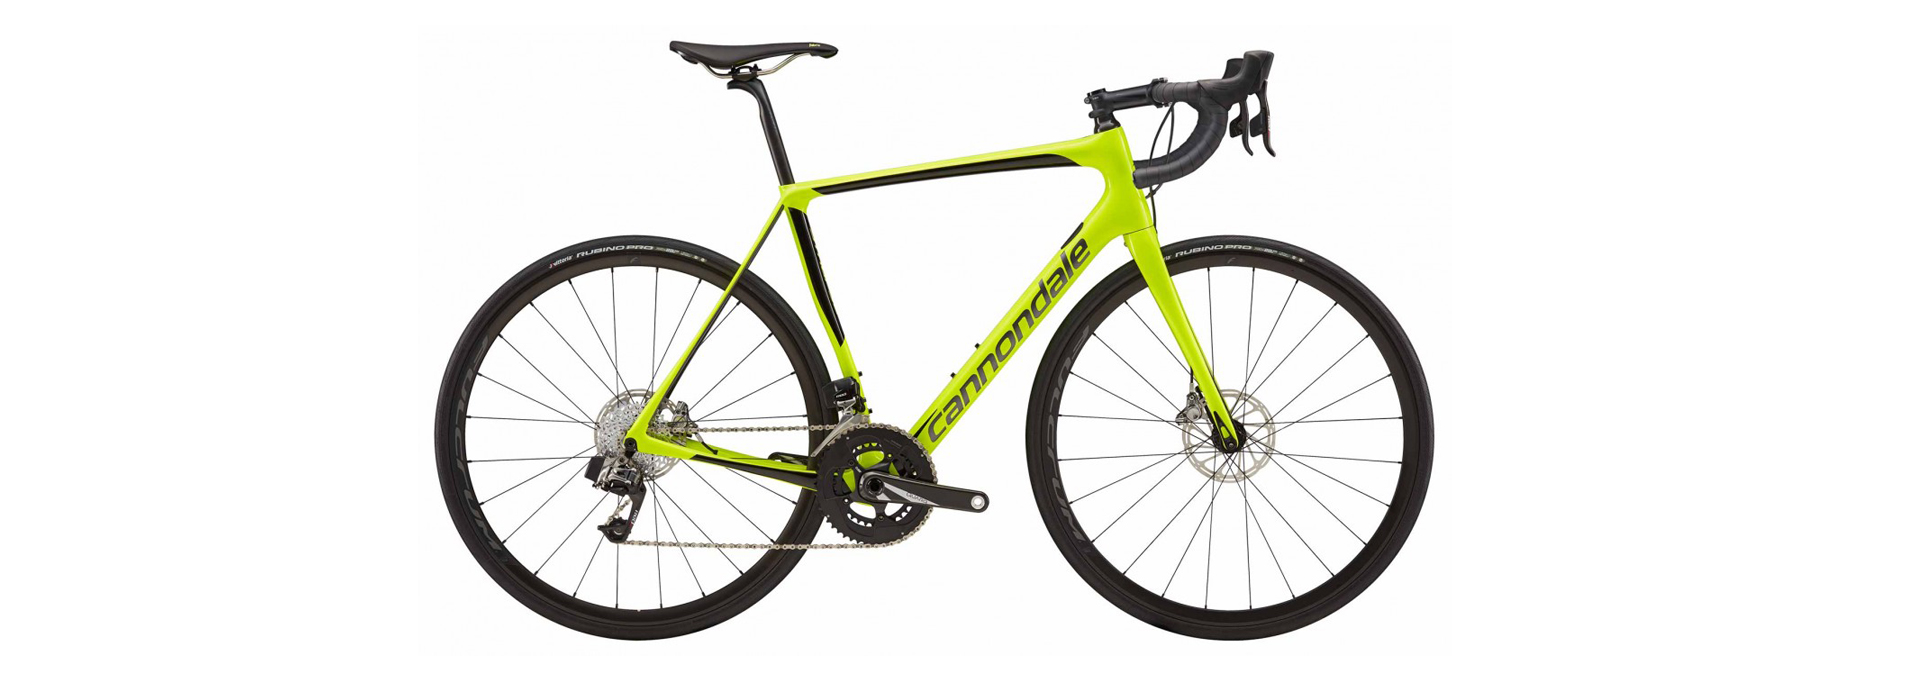 Cannondale Synapse - Jonathan Schottler